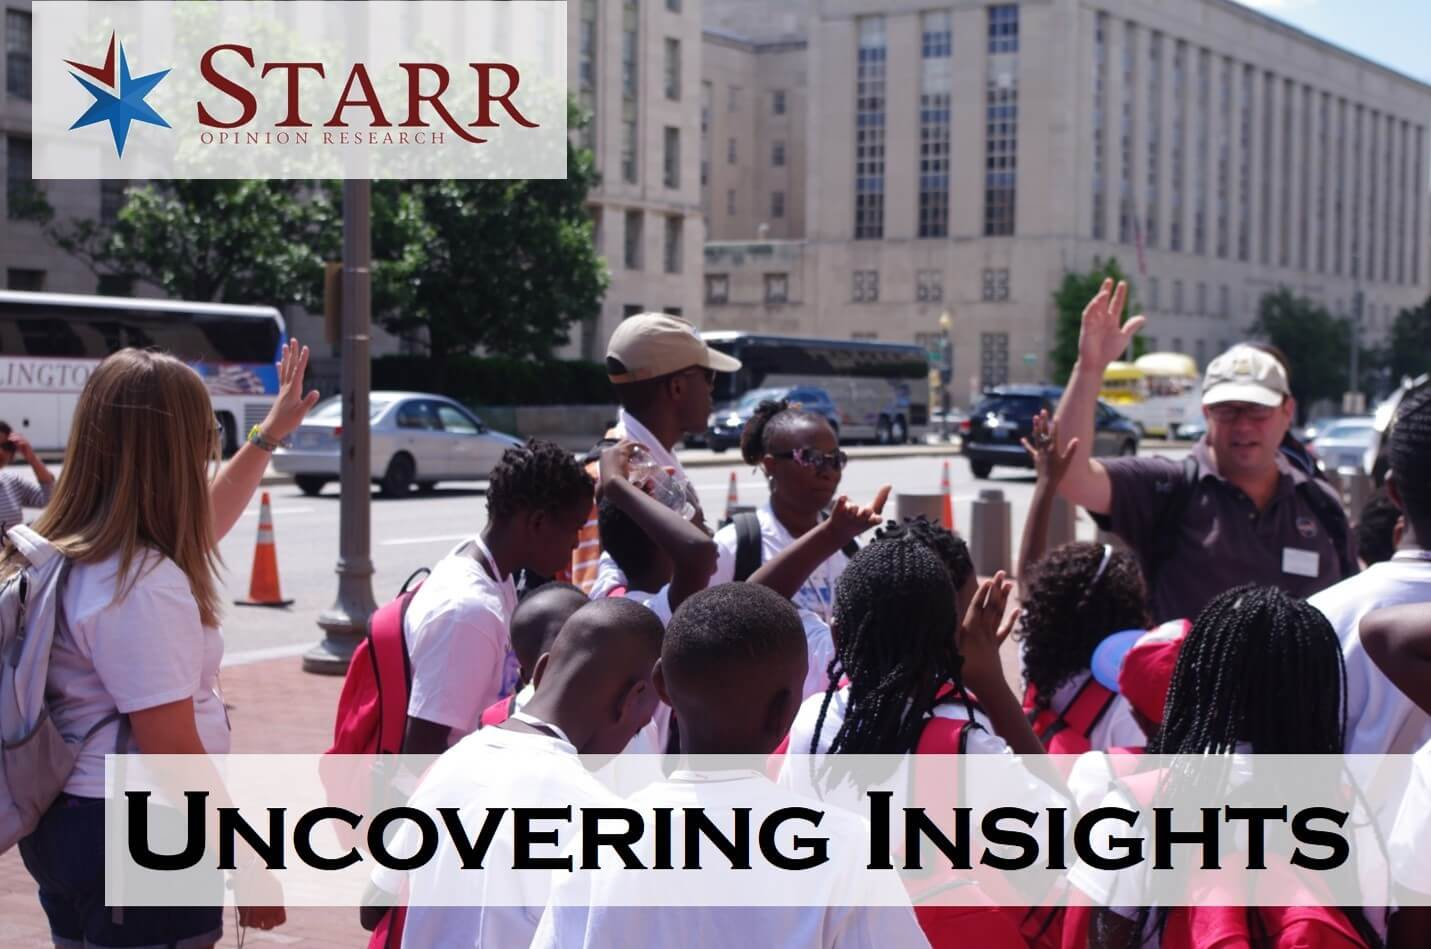 Starr Opinion Research Uncovers Insights